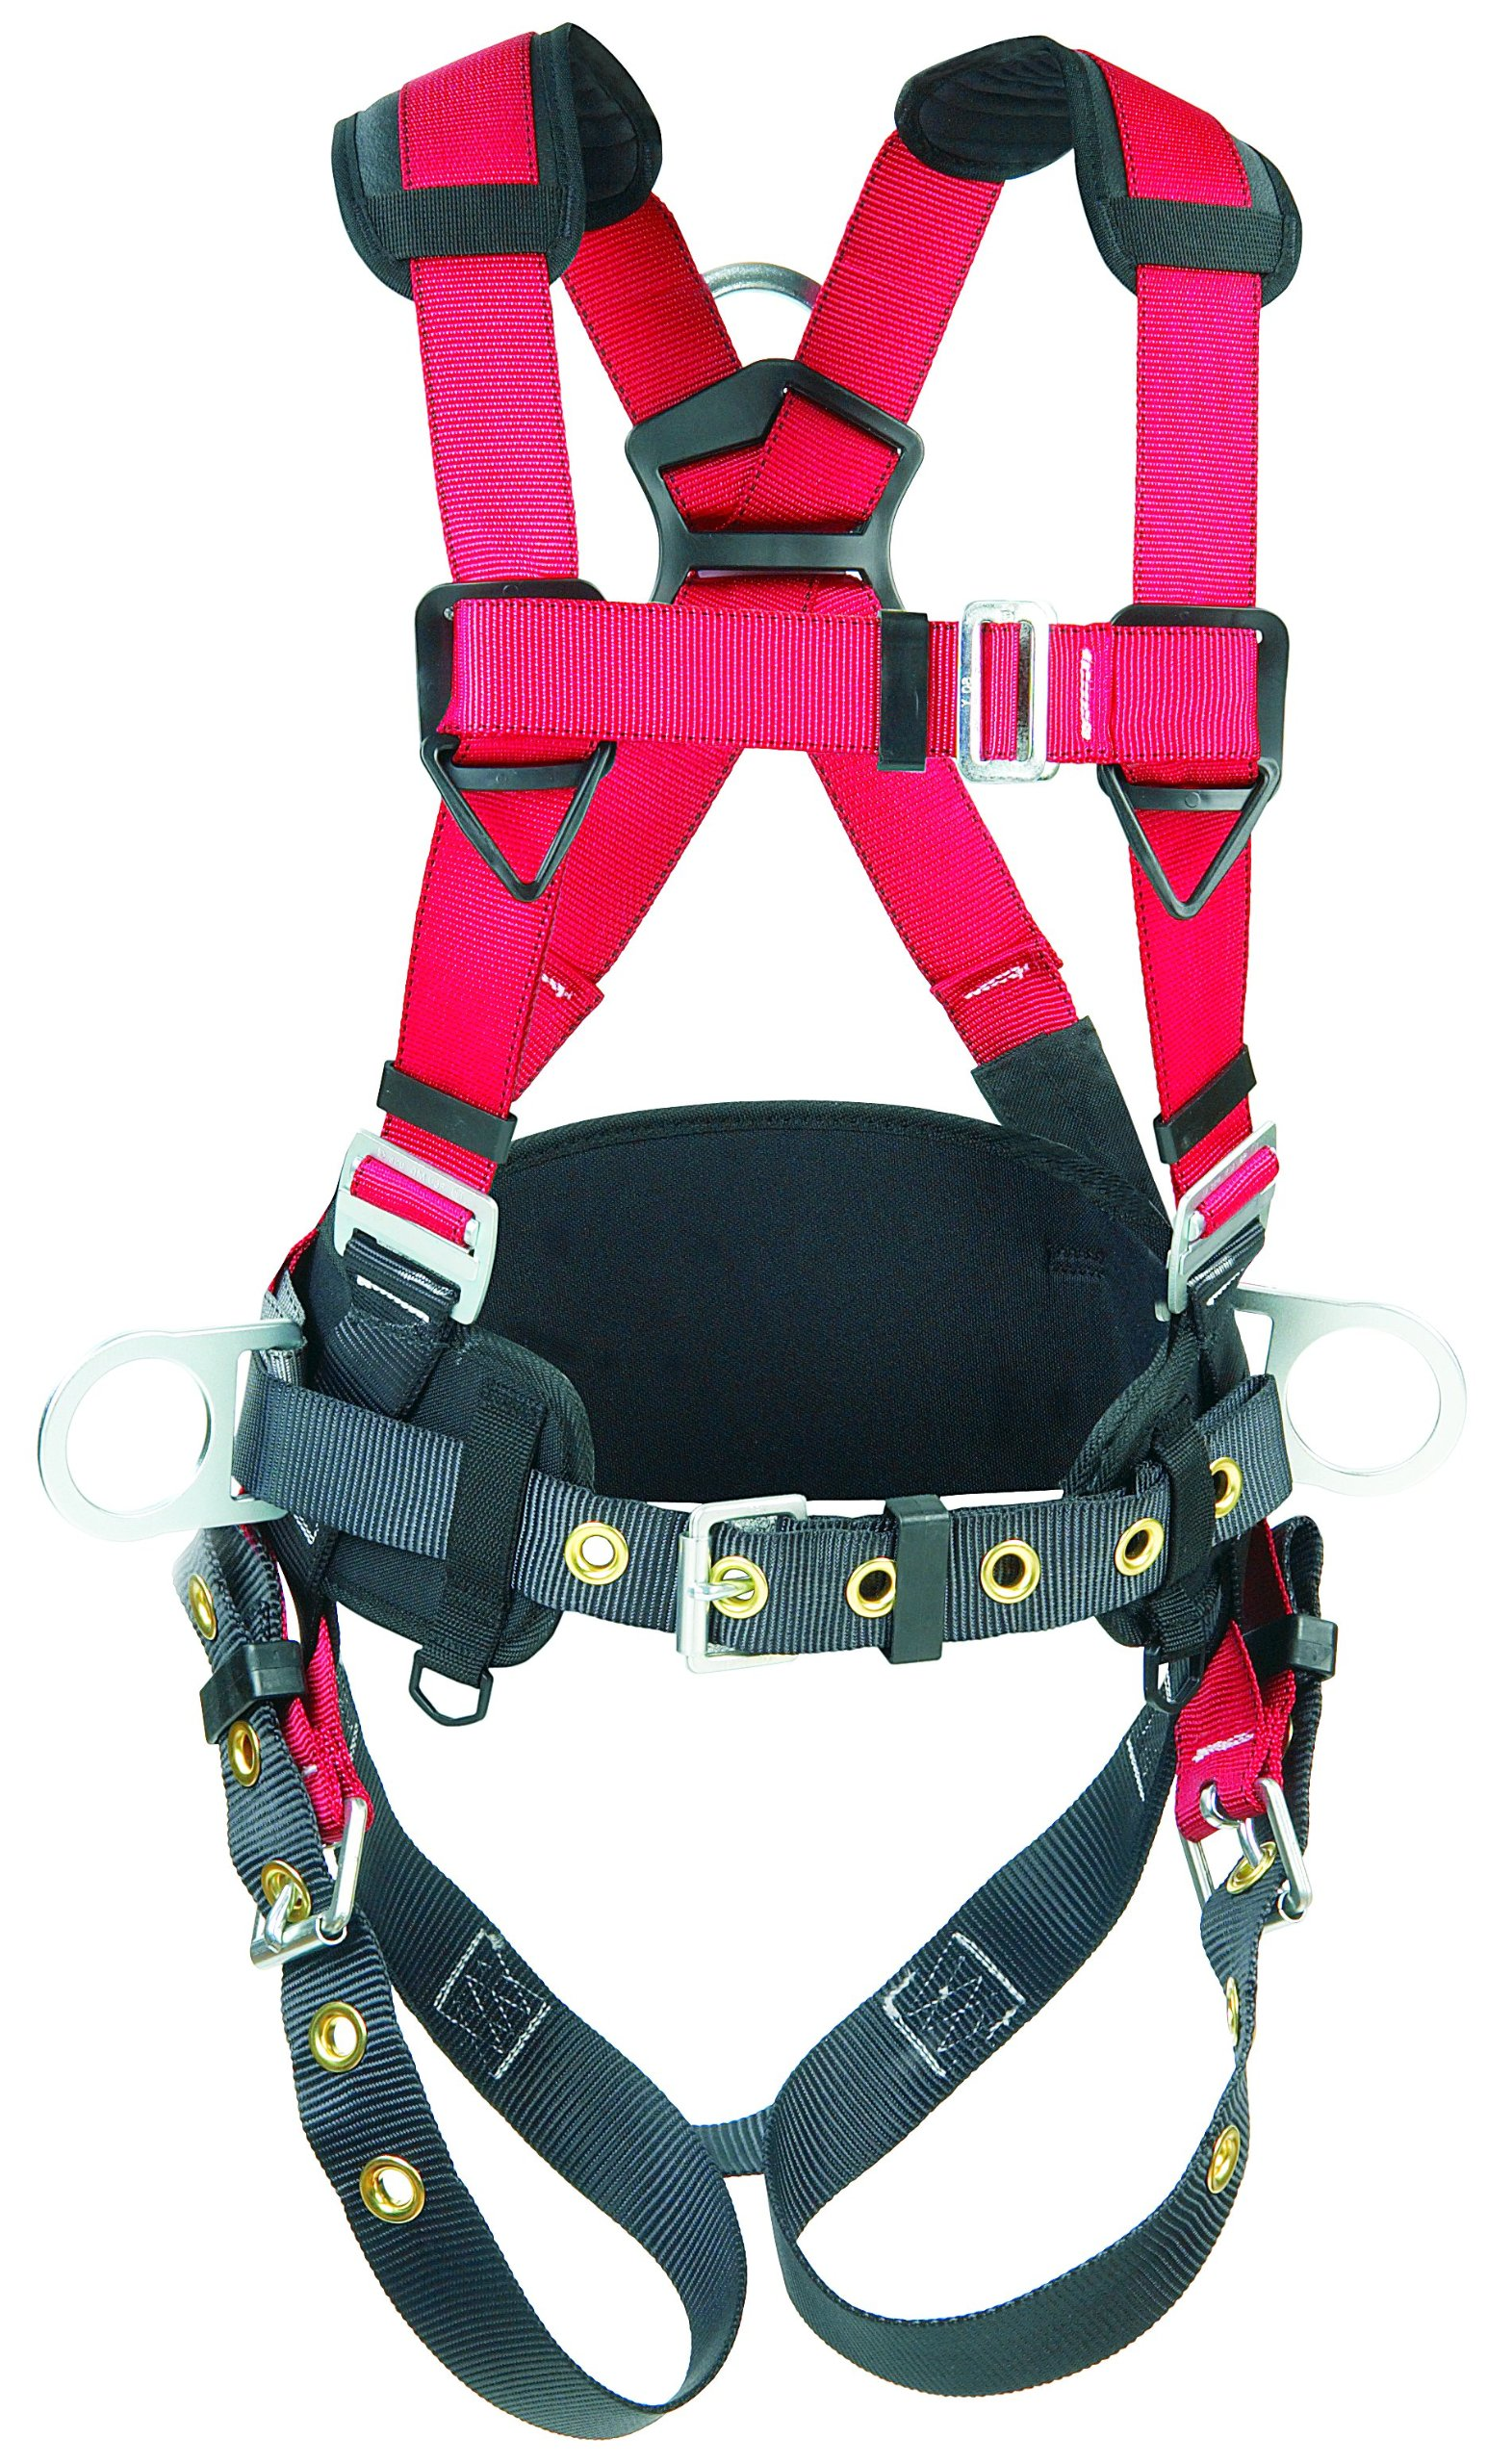 3M Protecta PRO Construction Harness, Back and Side D-Rings, 420 lb. Capacity, Medium/Large, 1191209 by 3M Fall Protection Business